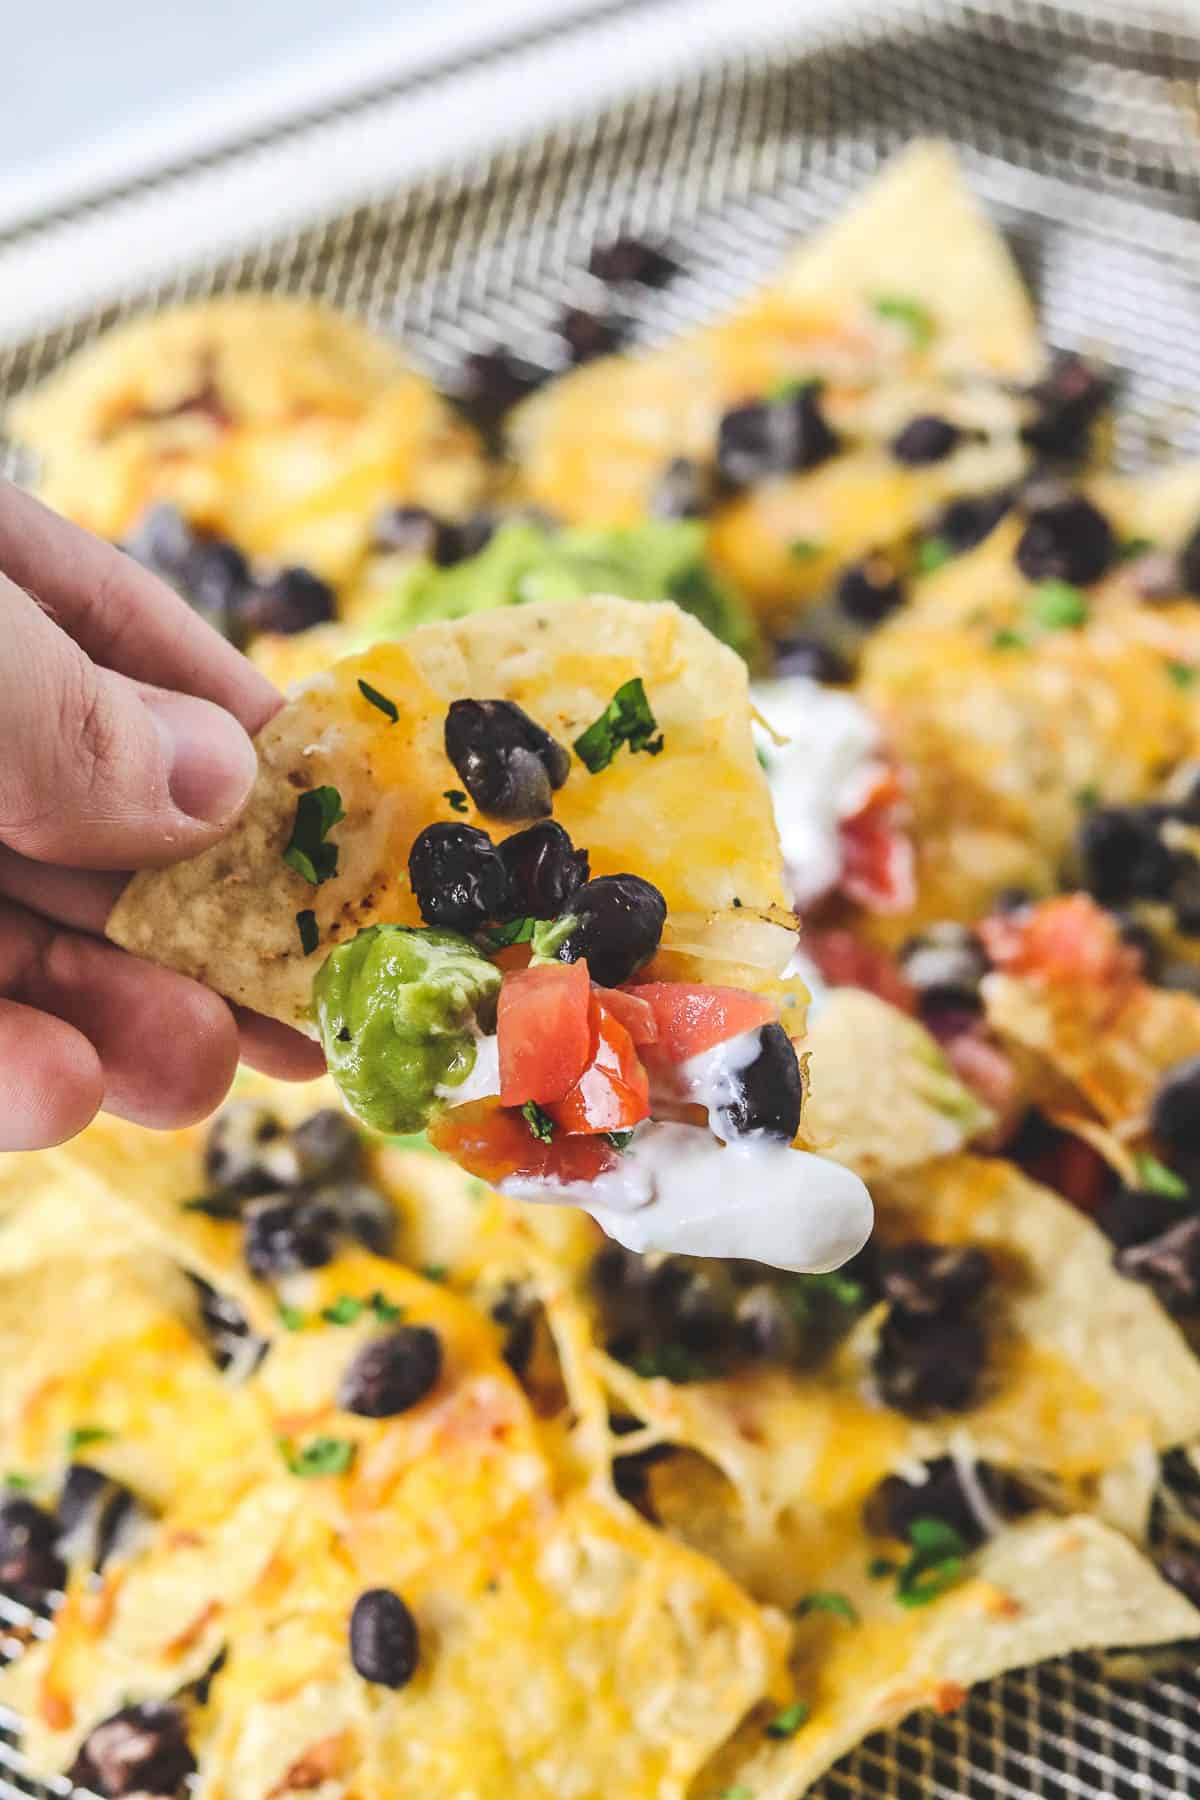 holding a chip of nachos with black beans, cheese, guacamole, sour cream, and pico de gallo